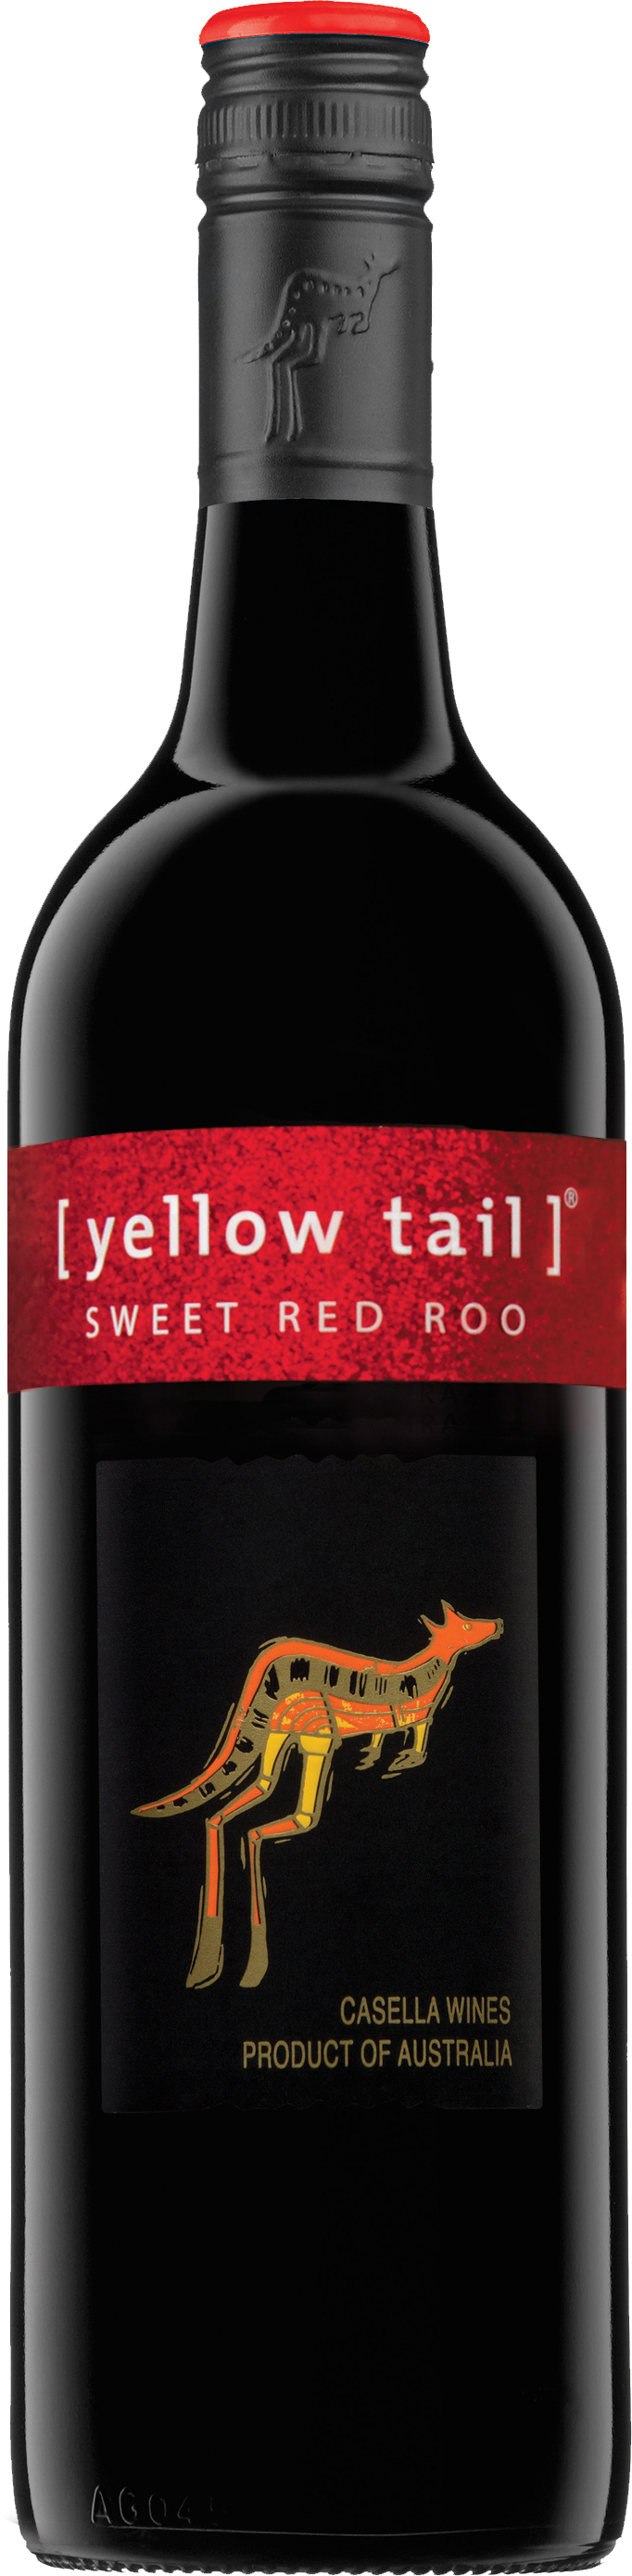 Relaxing With Some Sweet Smooth Fruity And Soothing Red Roo Wine From Yellow Tail While Chilling To Some Soulful Sweet Red Wines Sweet Wine Yellow Tail Wine